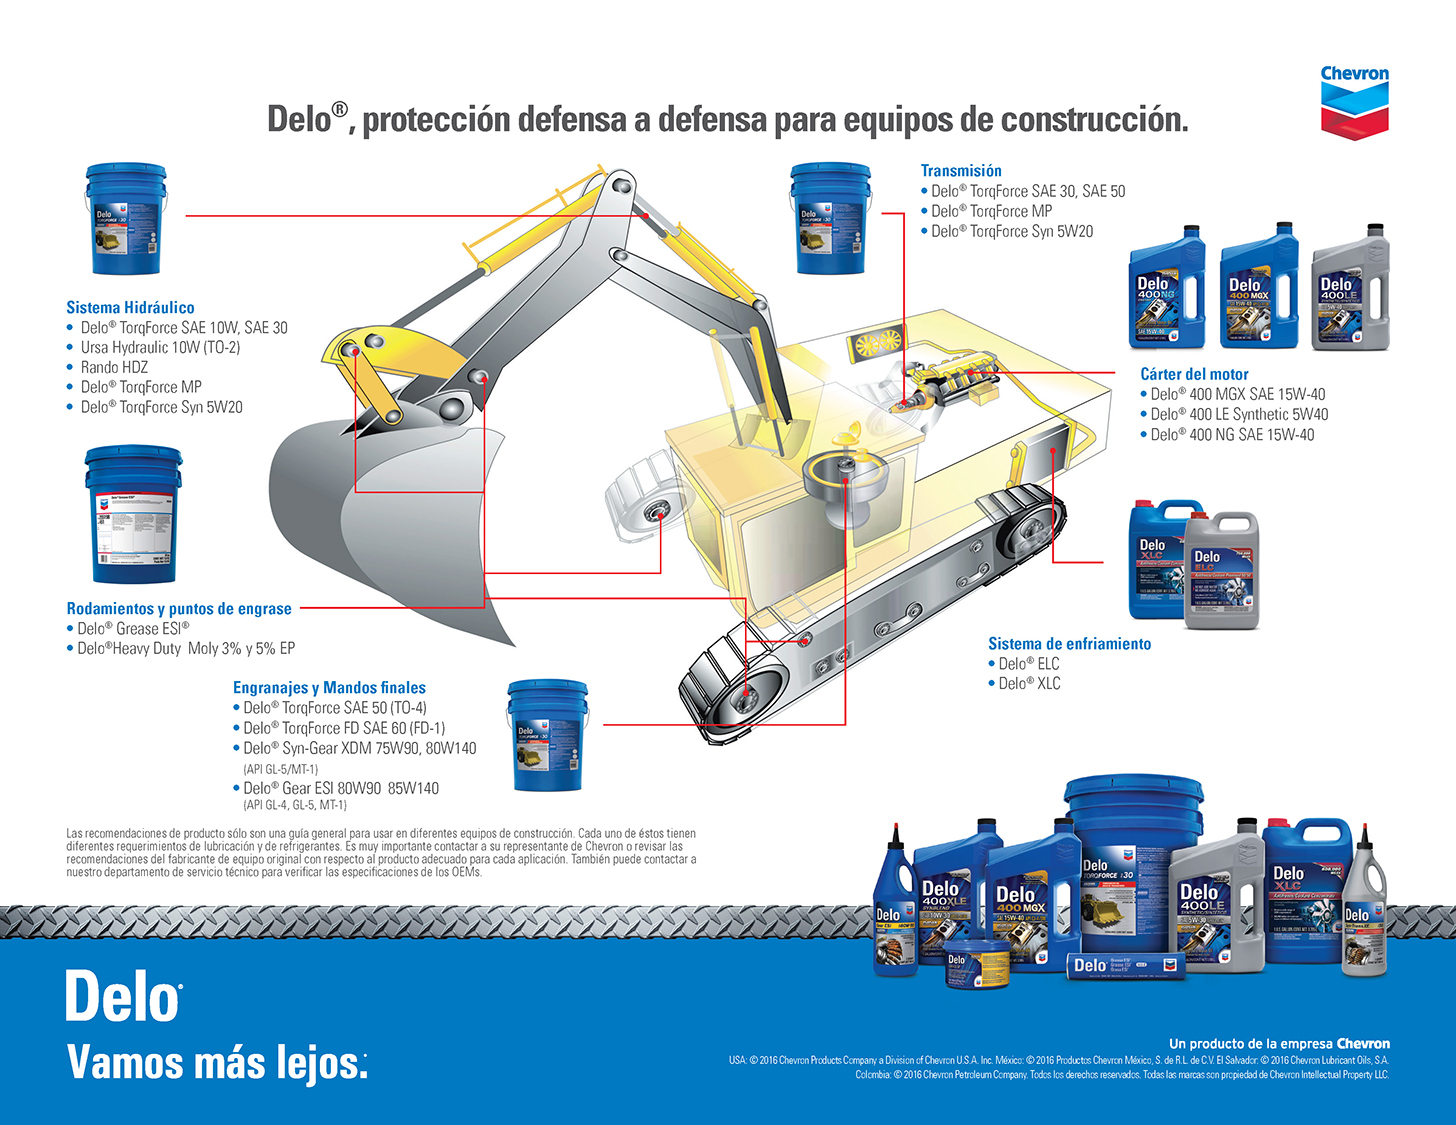 Delo protection for construction equipment